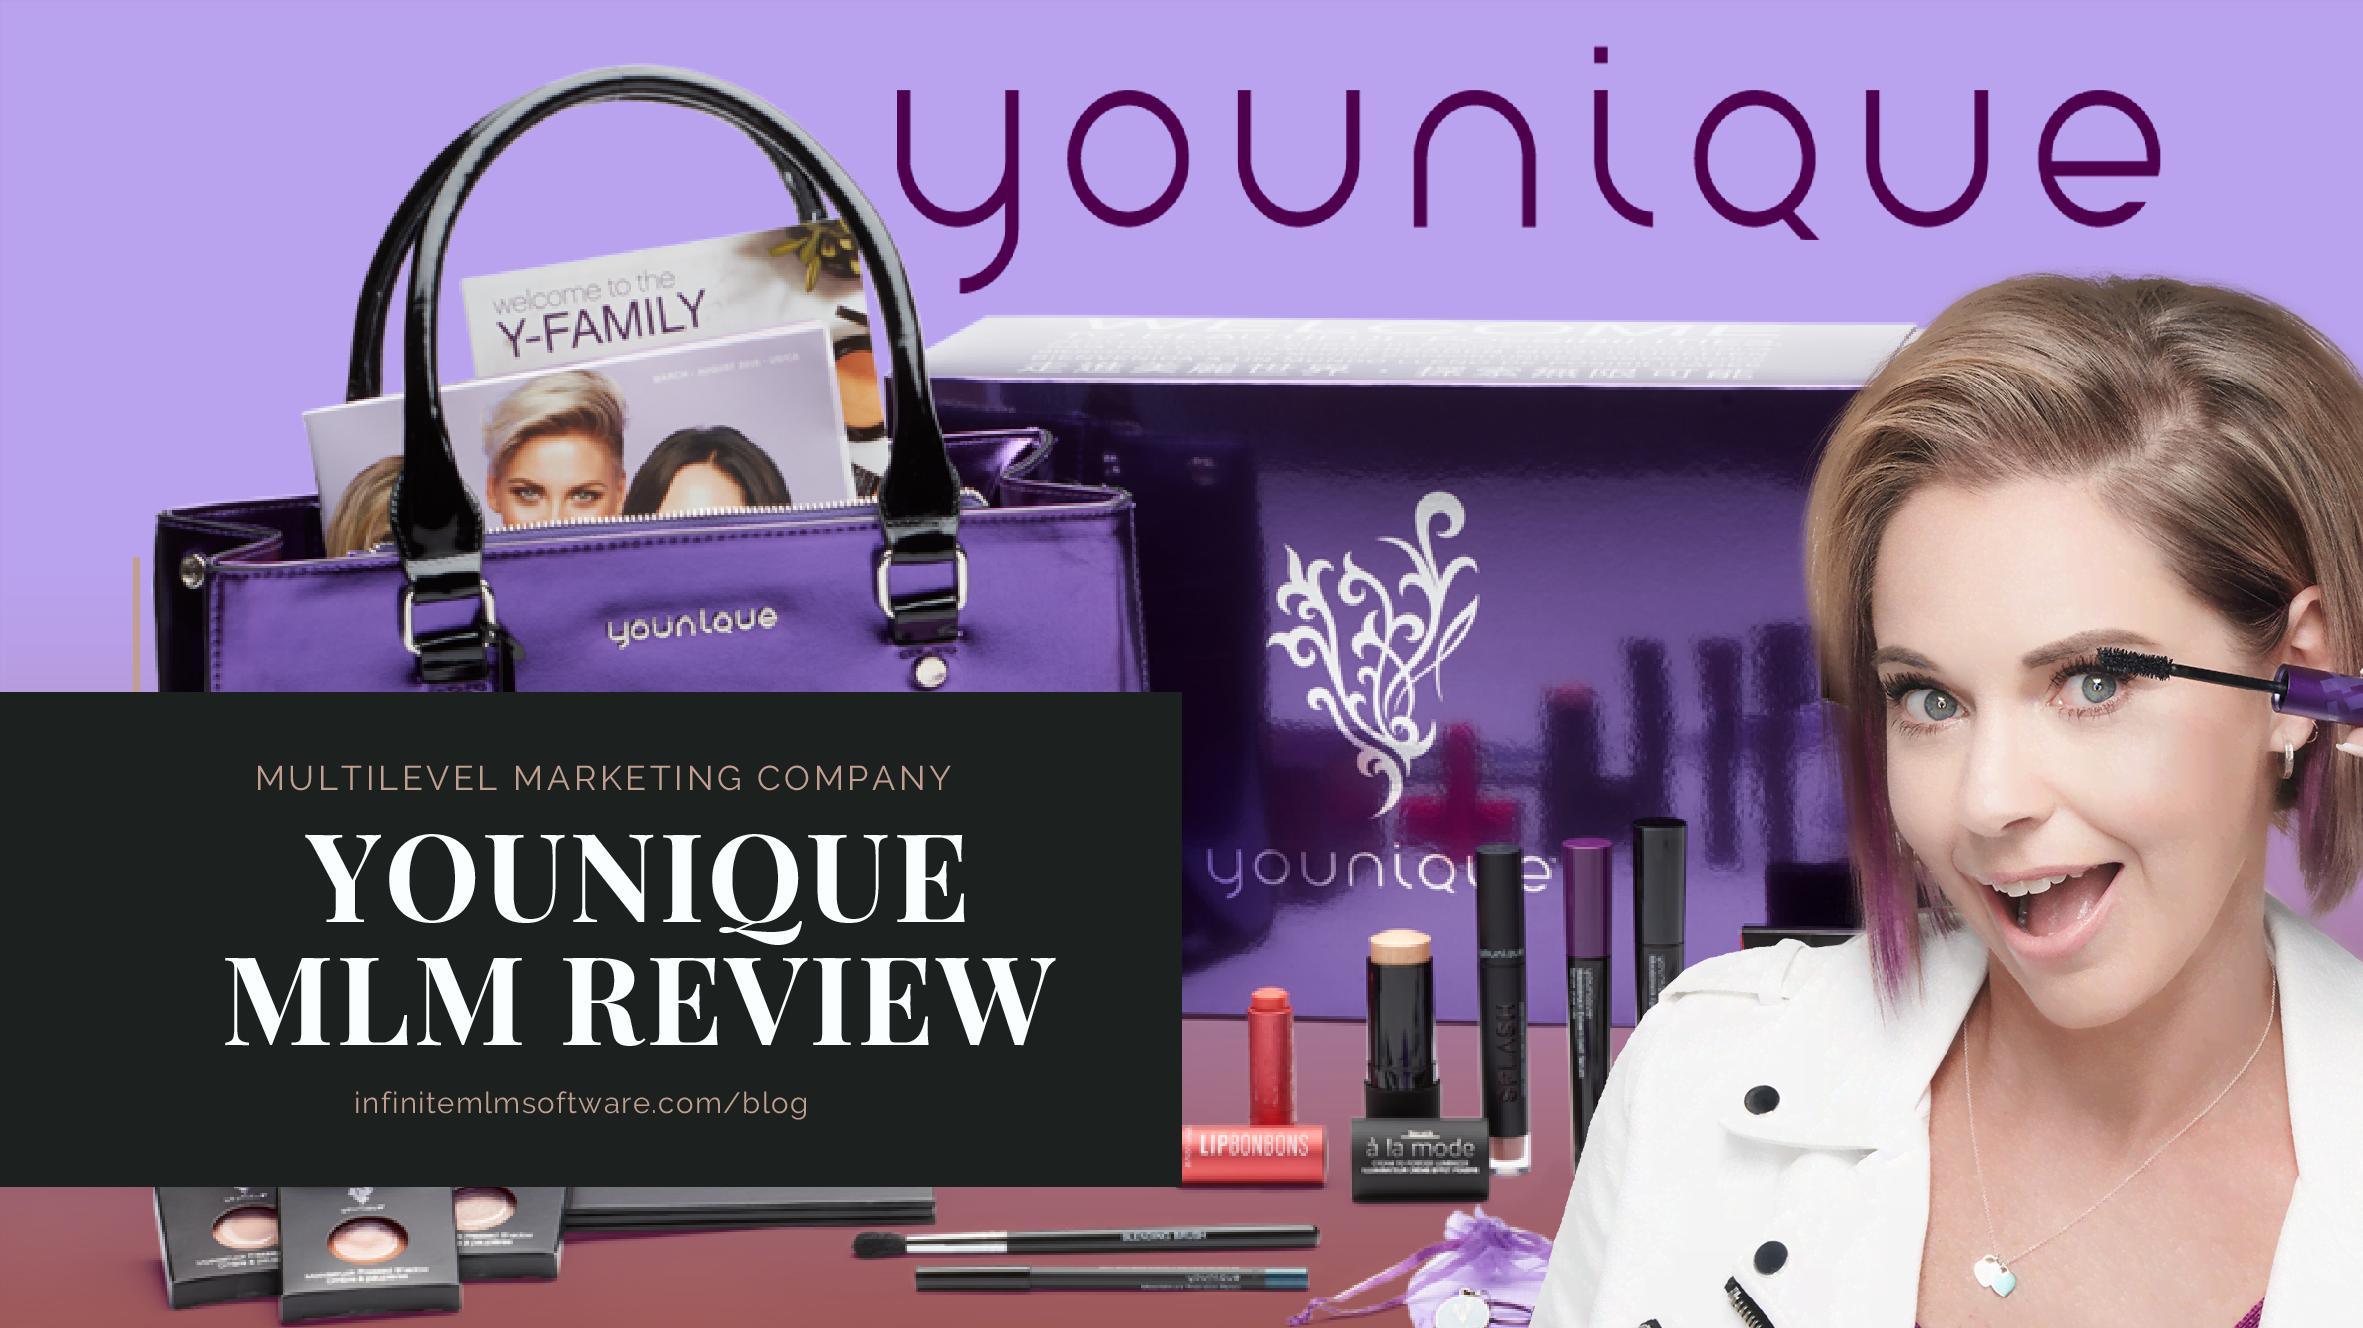 Younique MLM Review